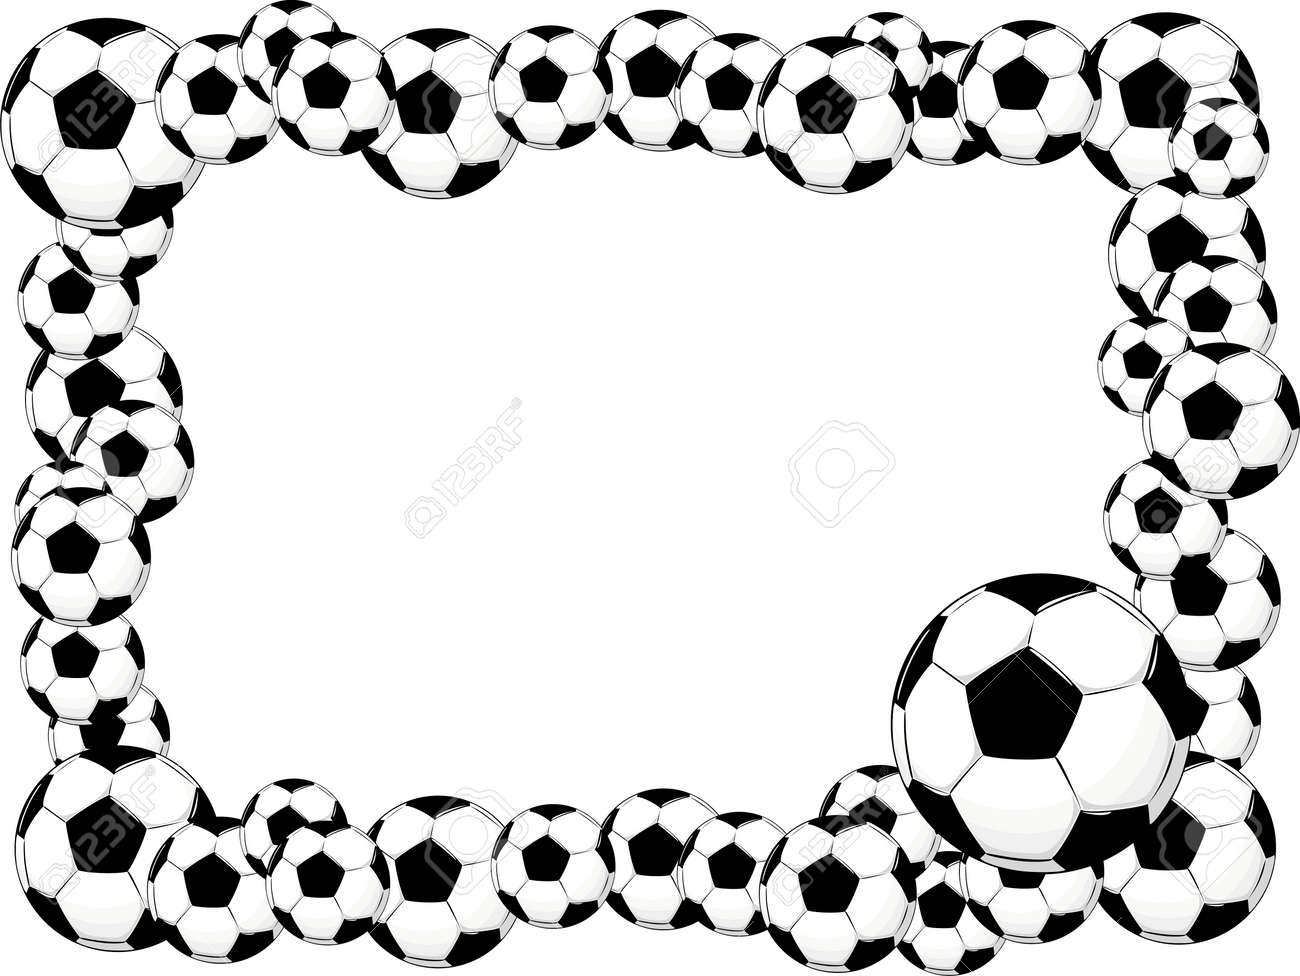 Soccer Balls Frame Royalty Free Cliparts, Vectors, And Stock ...